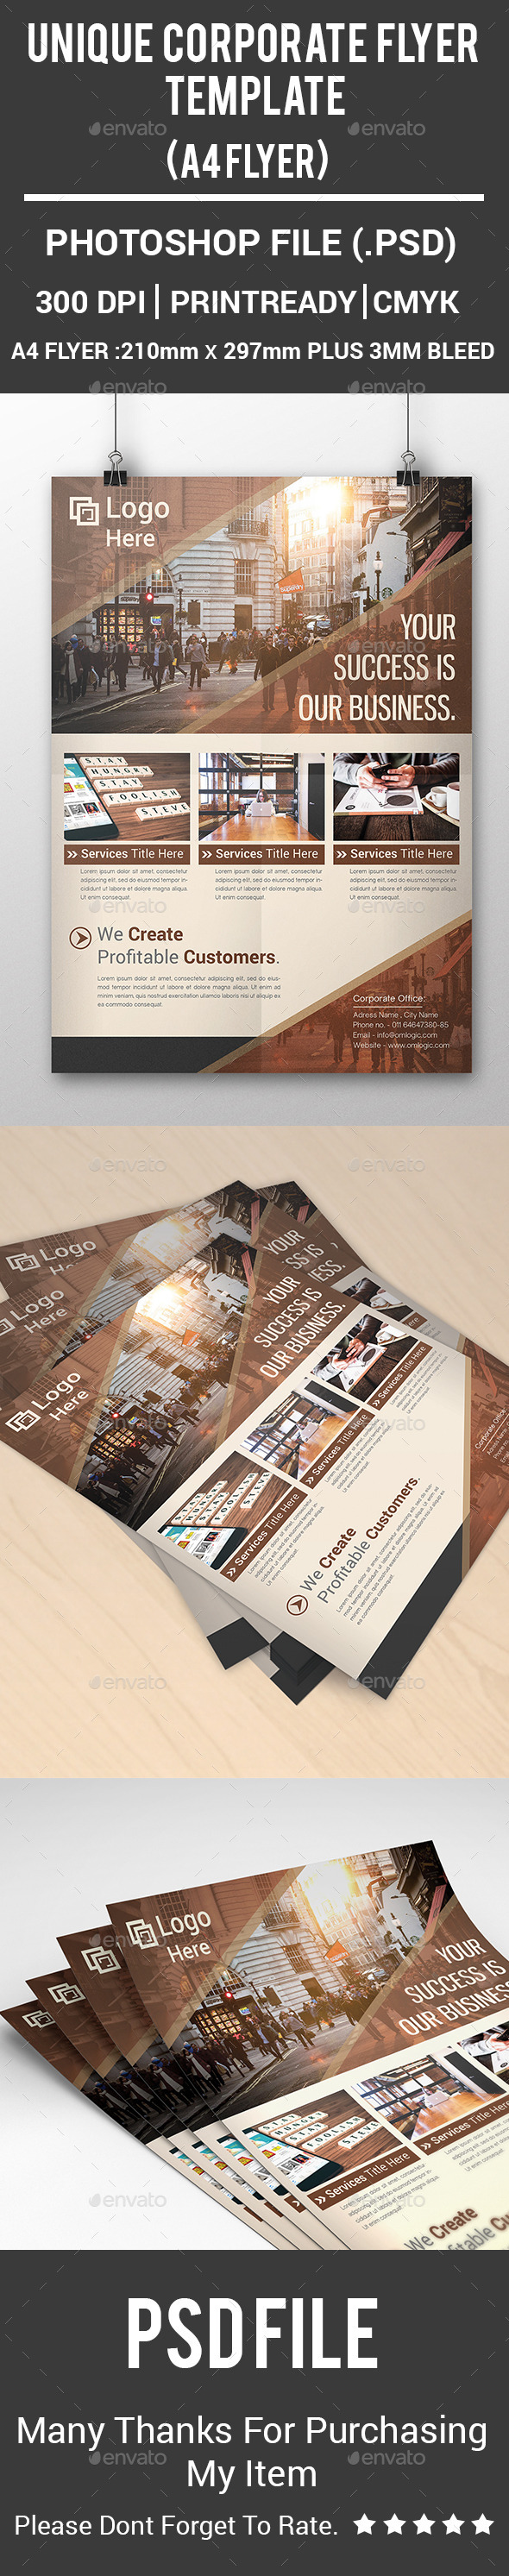 Unique Corporate Flyer Template - Corporate Flyers